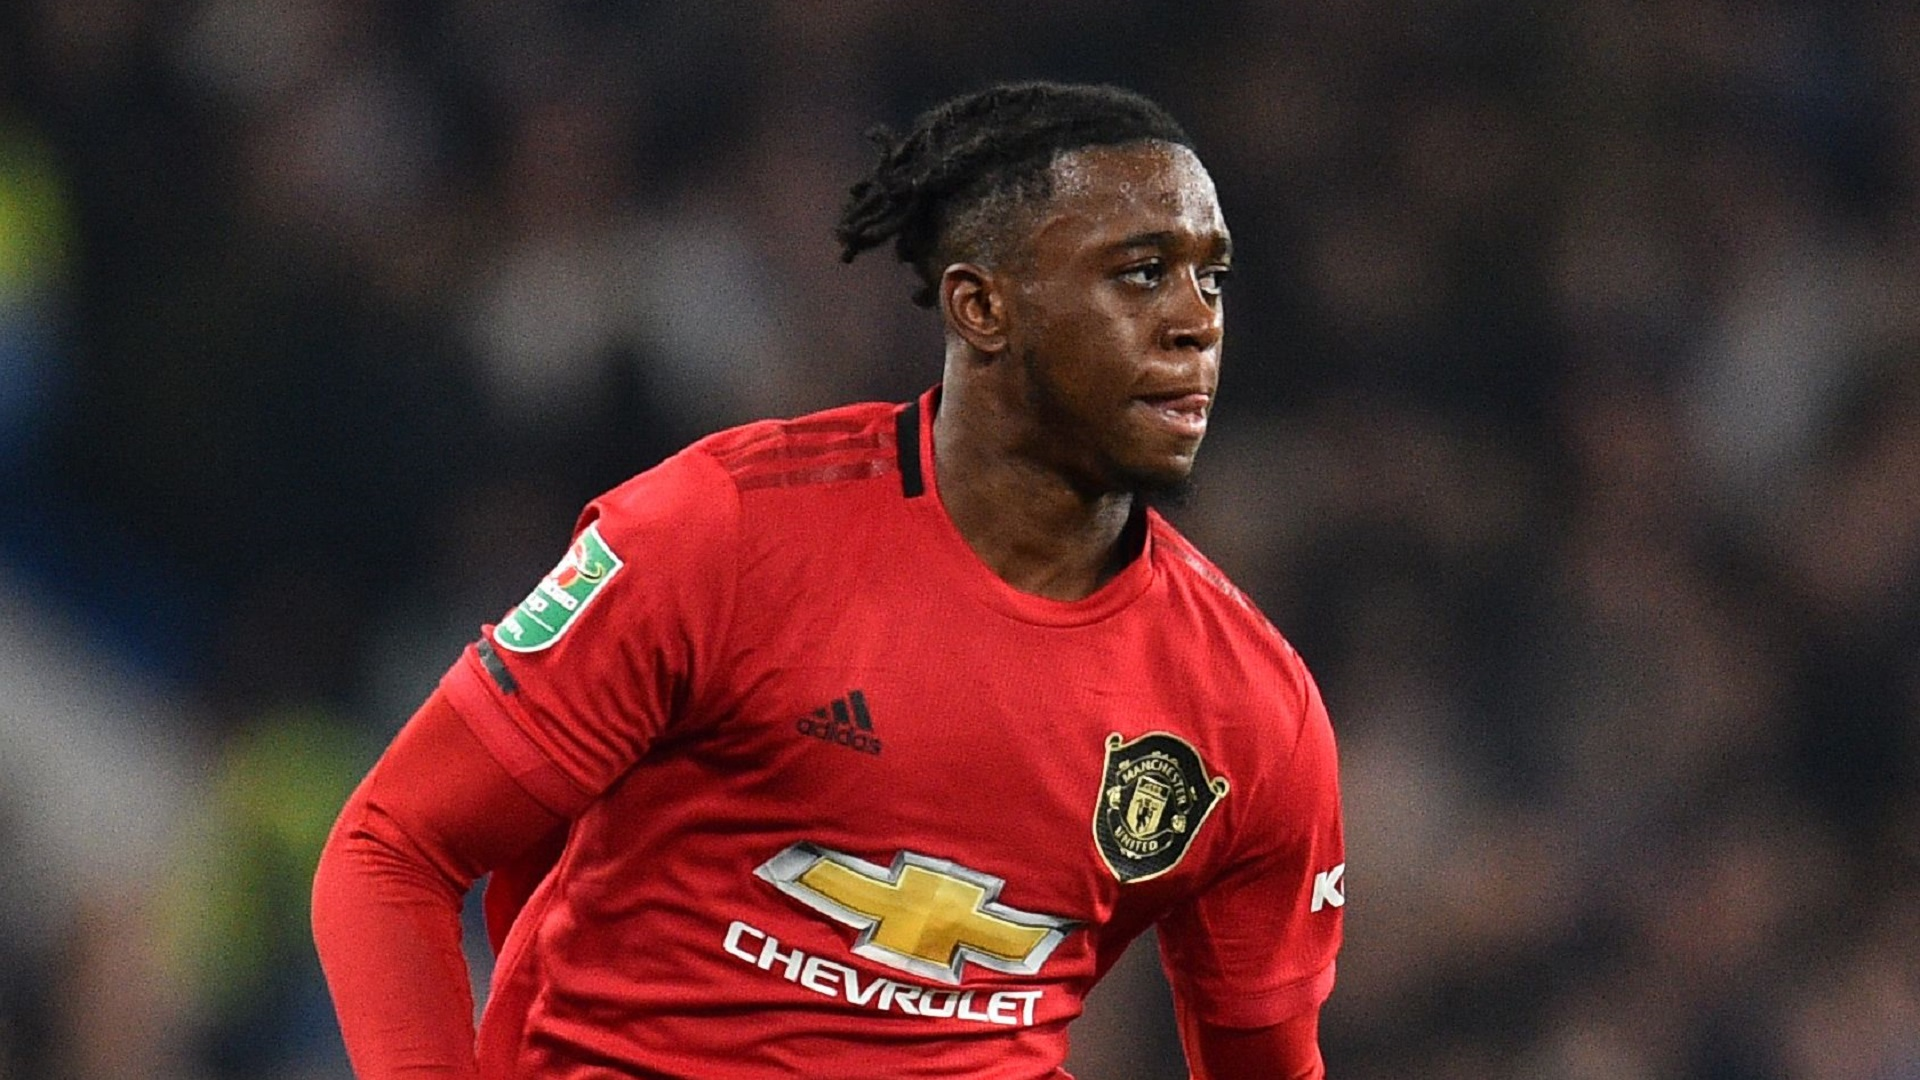 wan bissaka has most successful tackle rate in europe - Bóng Đá